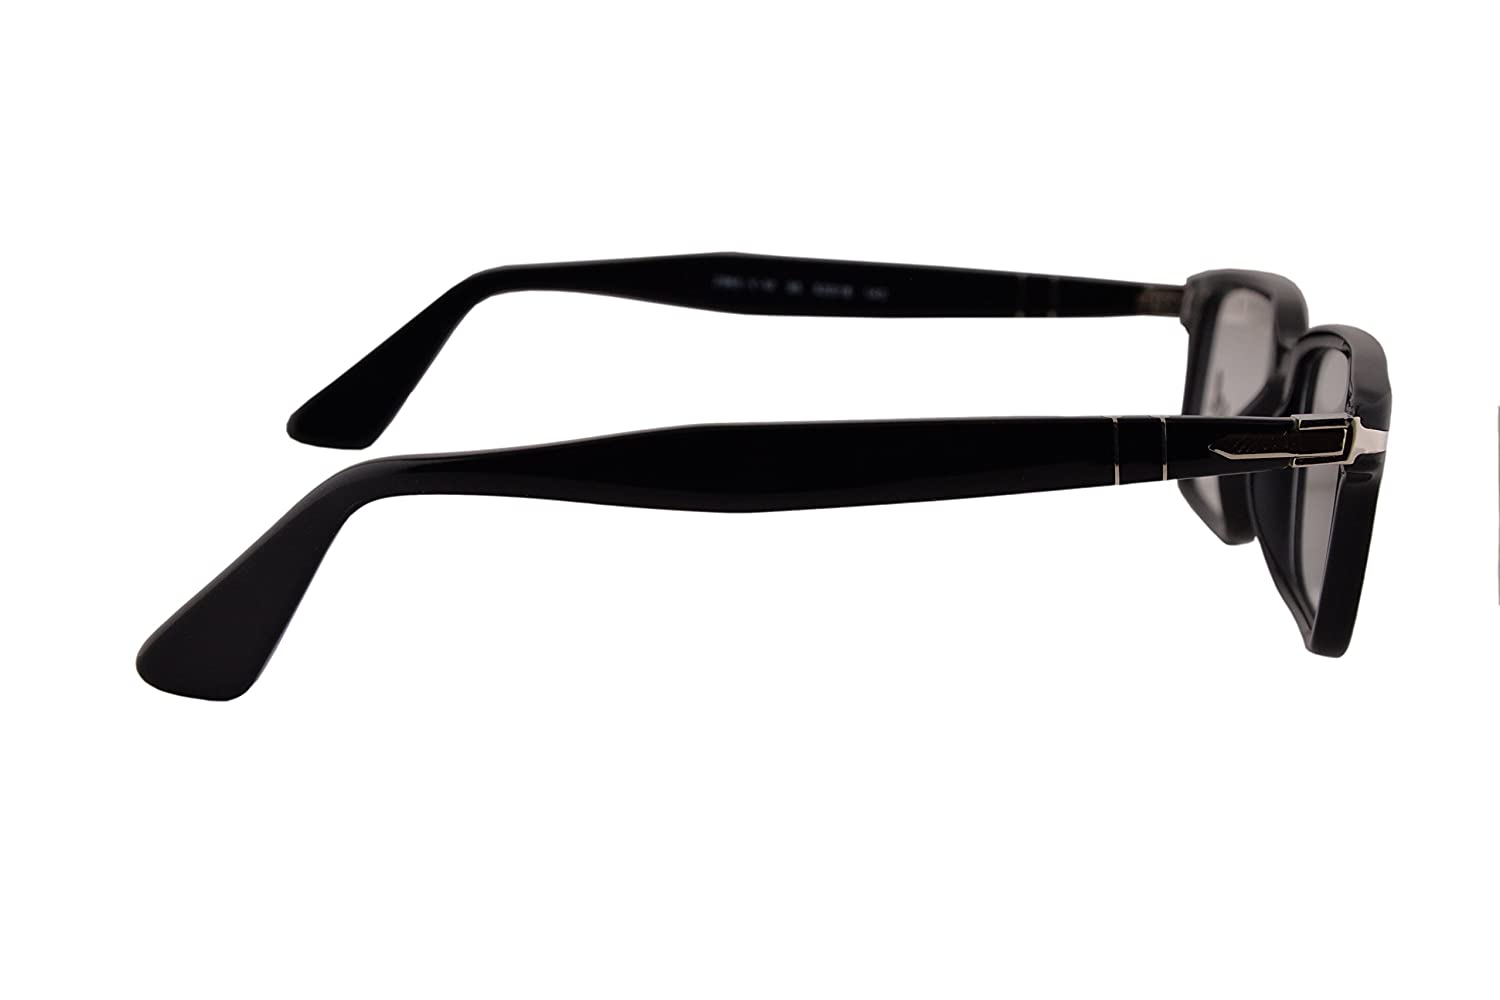 948cc9da76c07 Persol PO2965VM Eyeglasses 53-18-140 Black 95 PO2965-V-M (FRAME ONLY)   Amazon.ca  Clothing   Accessories